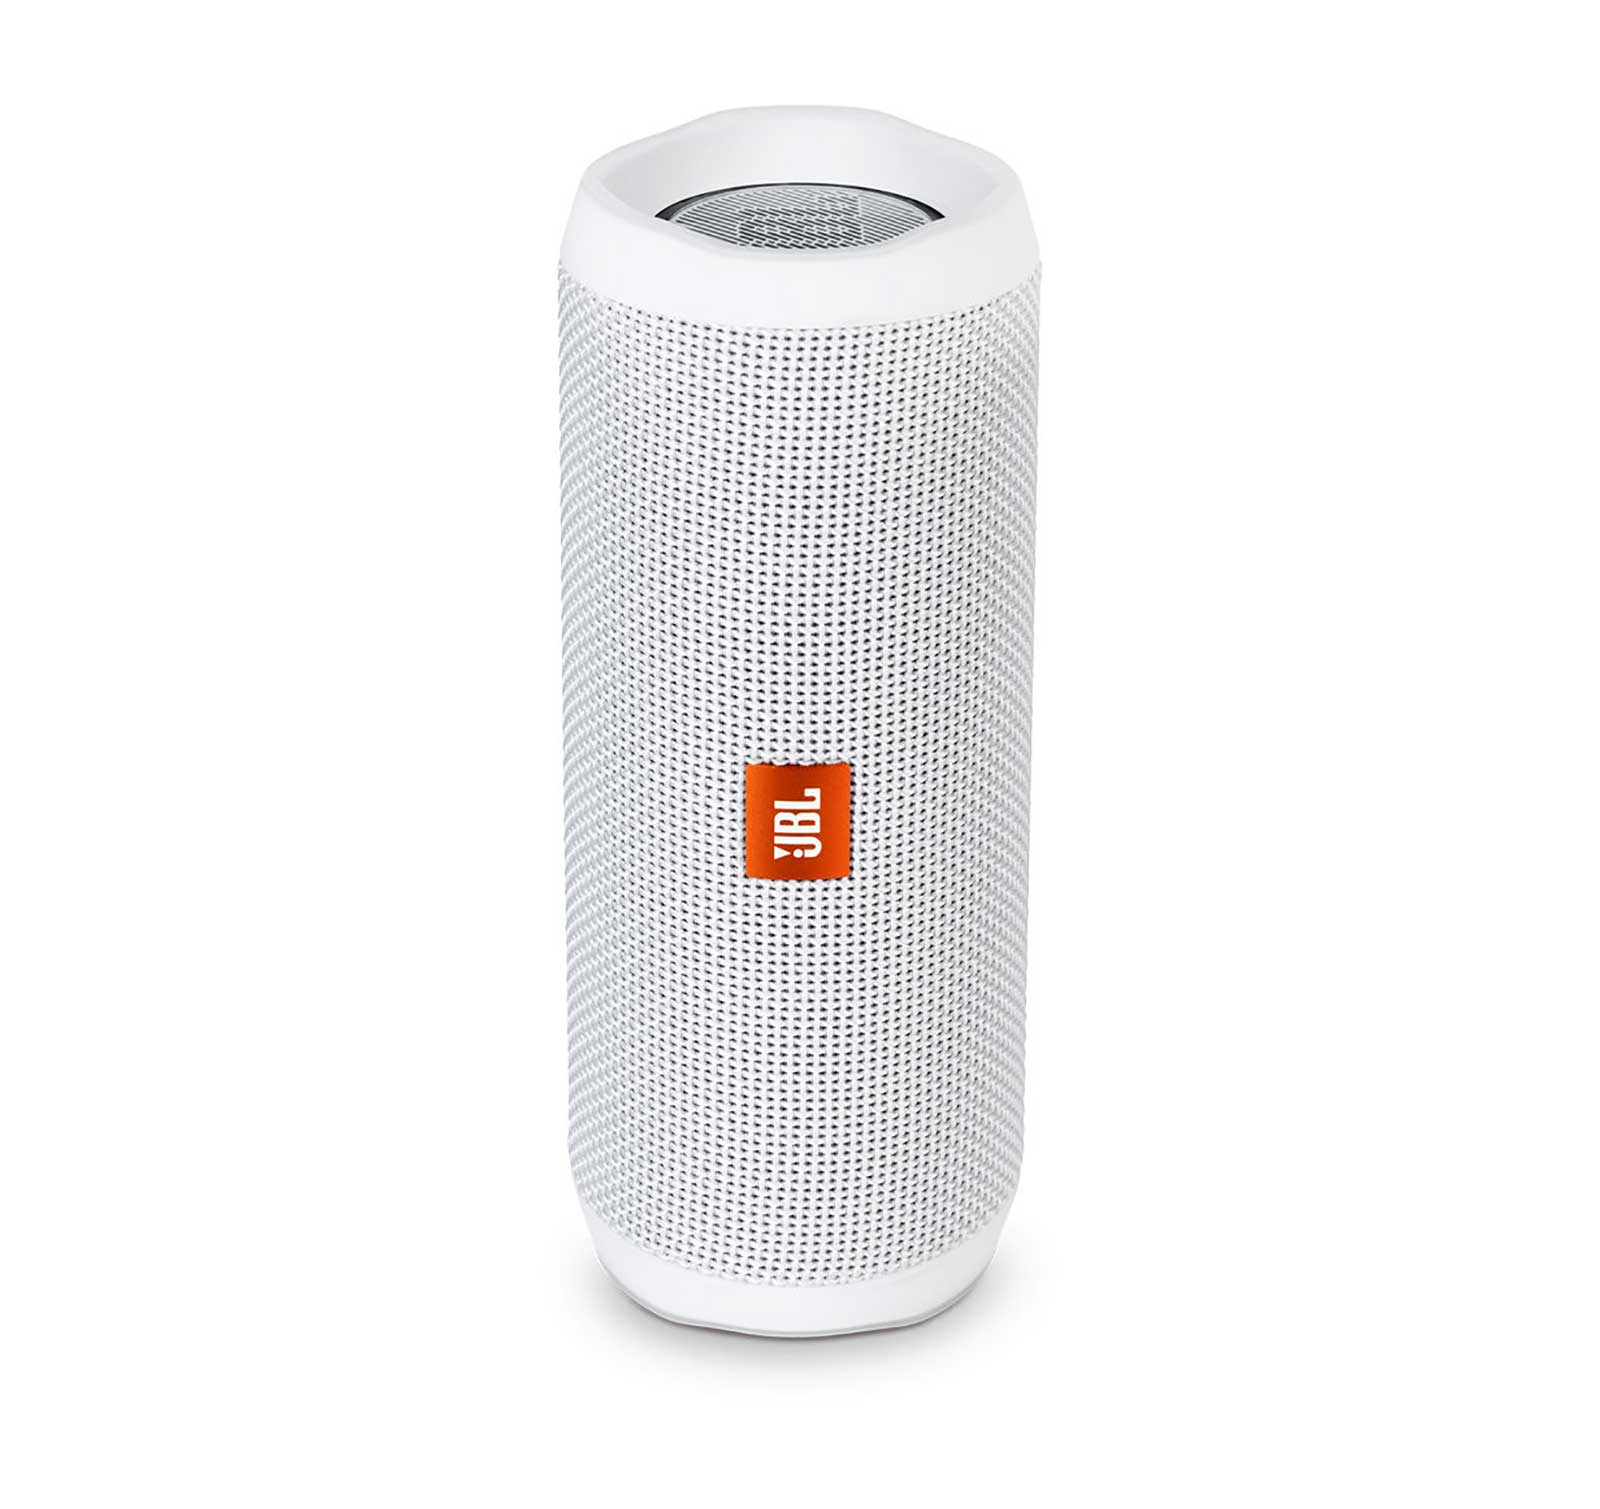 JBL FLIP 4 White Portable Bluetooth Speaker Walmart